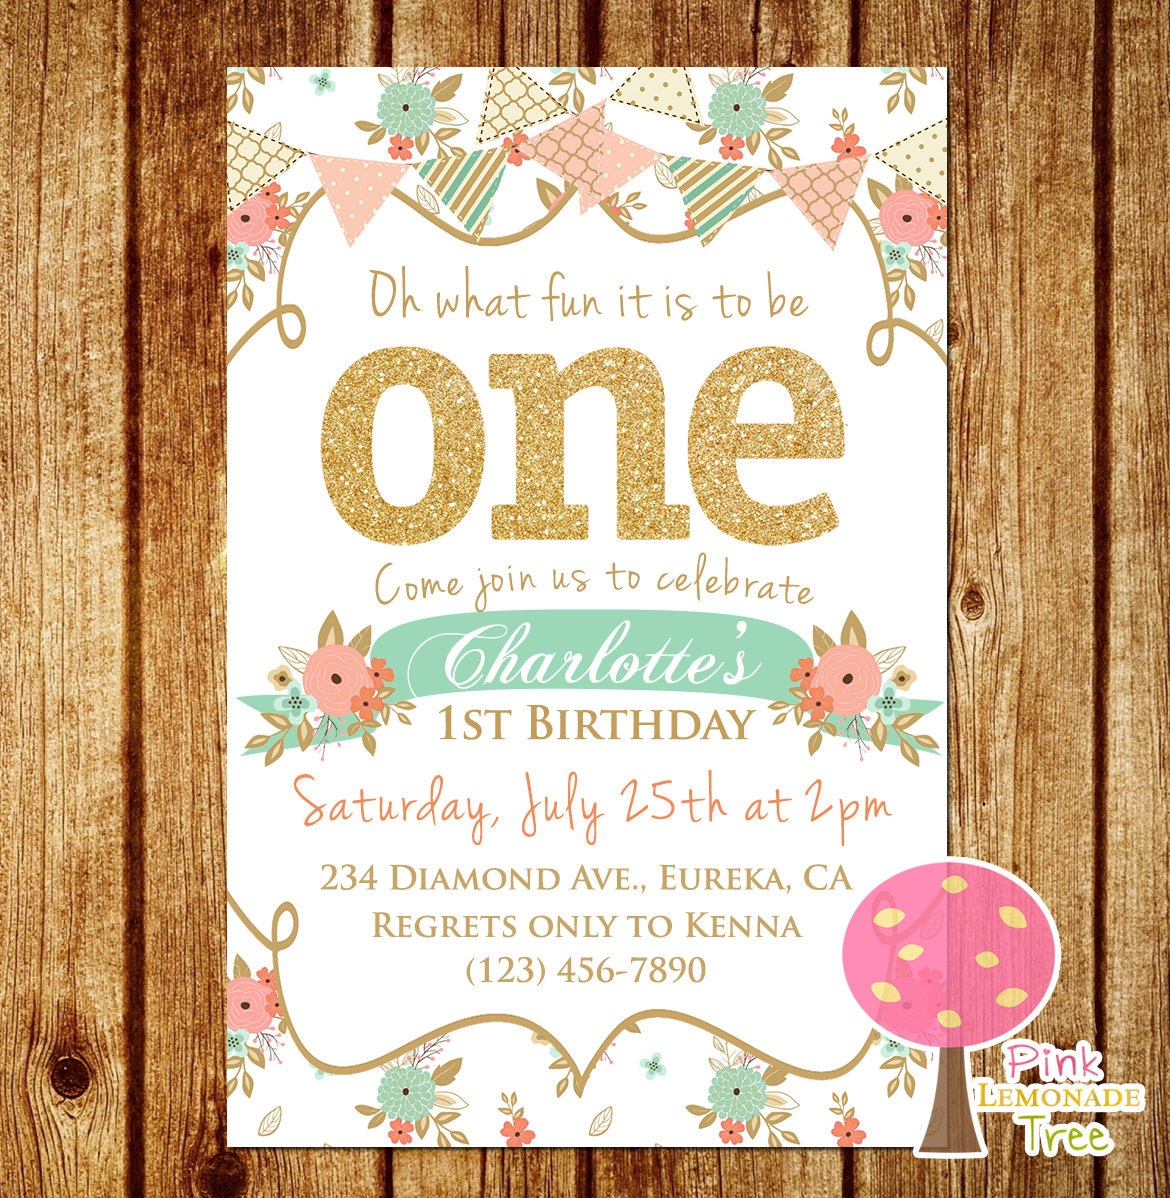 Personalised New Baby Or Birthday Card By Mint Nifty: Shabby Chic First Birthday Party Invitation Gold Glitter